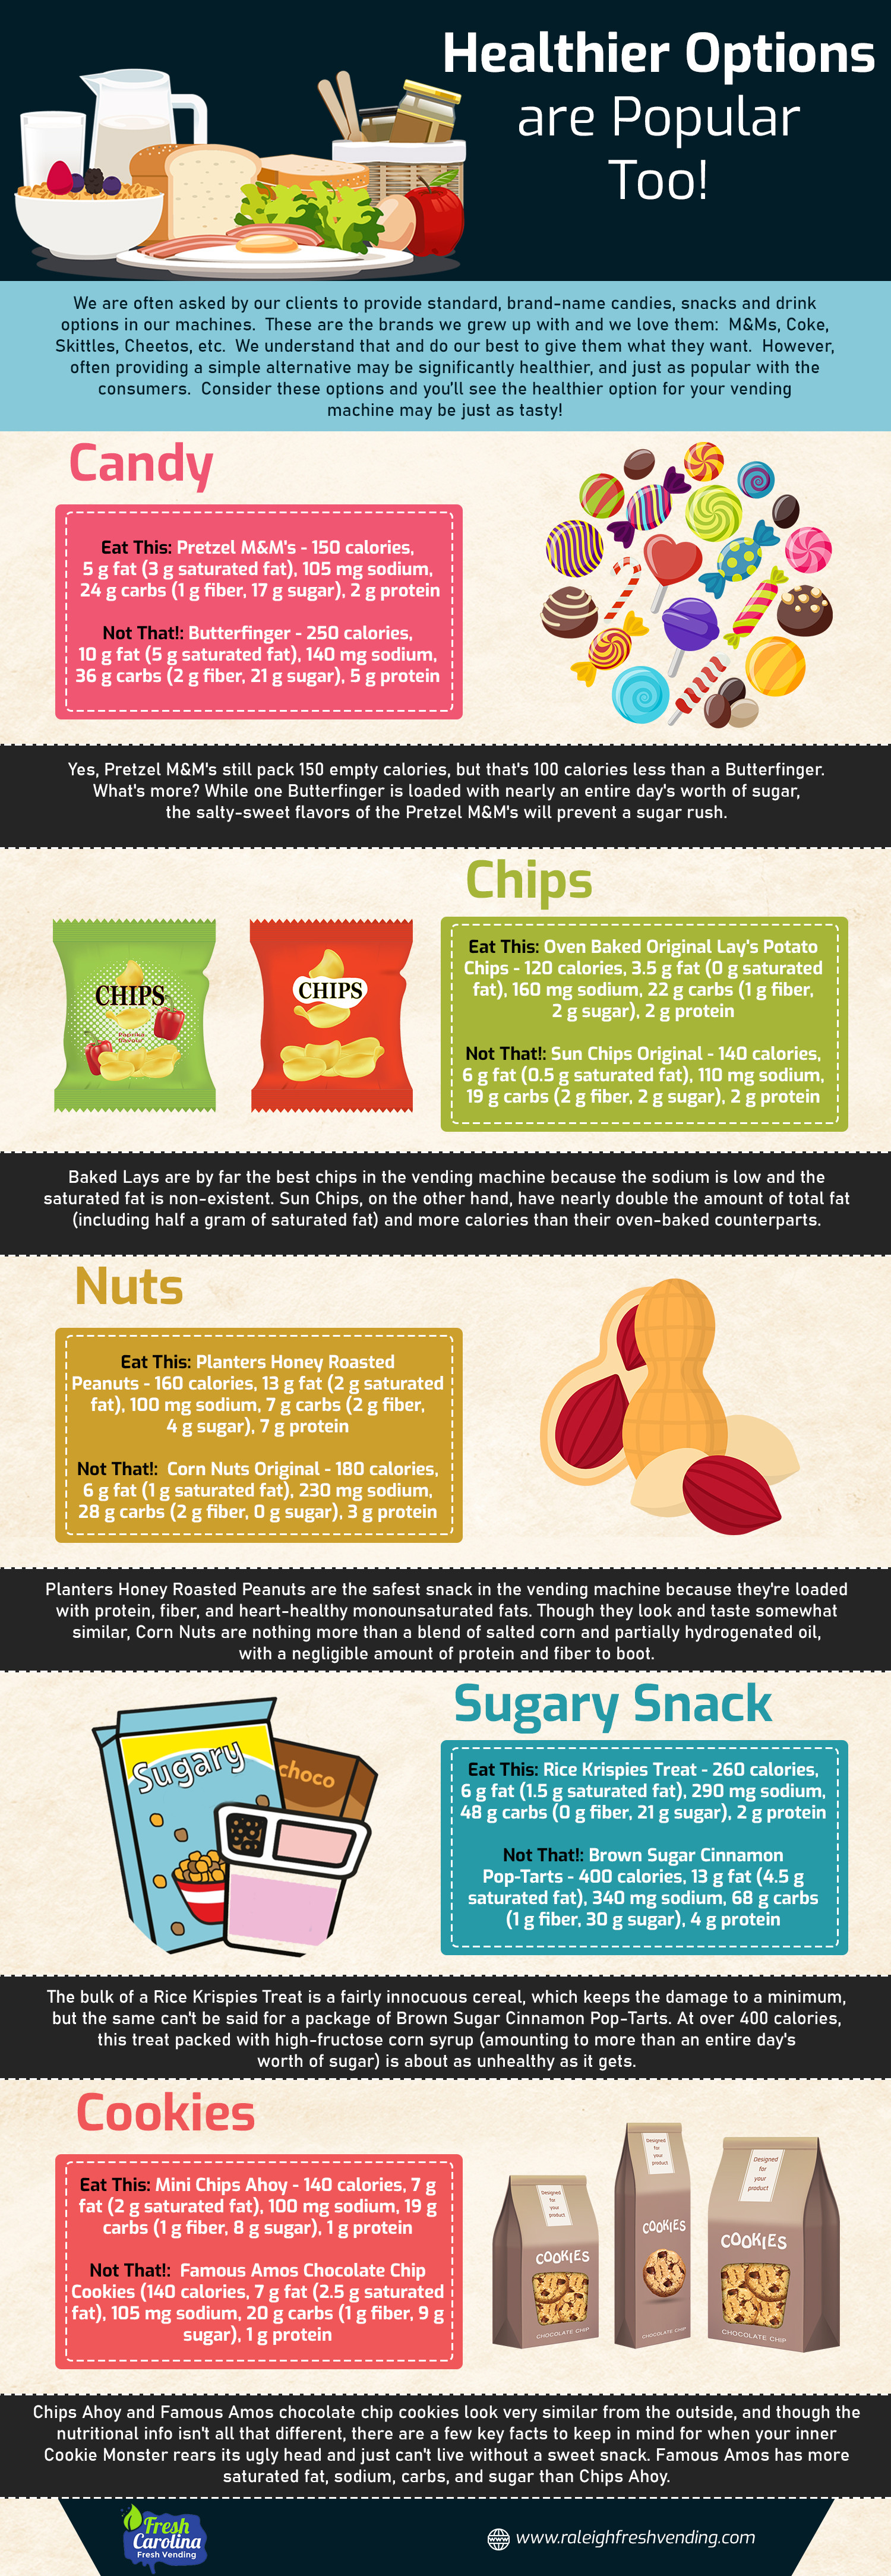 Healthier Options are Popular too Infographic